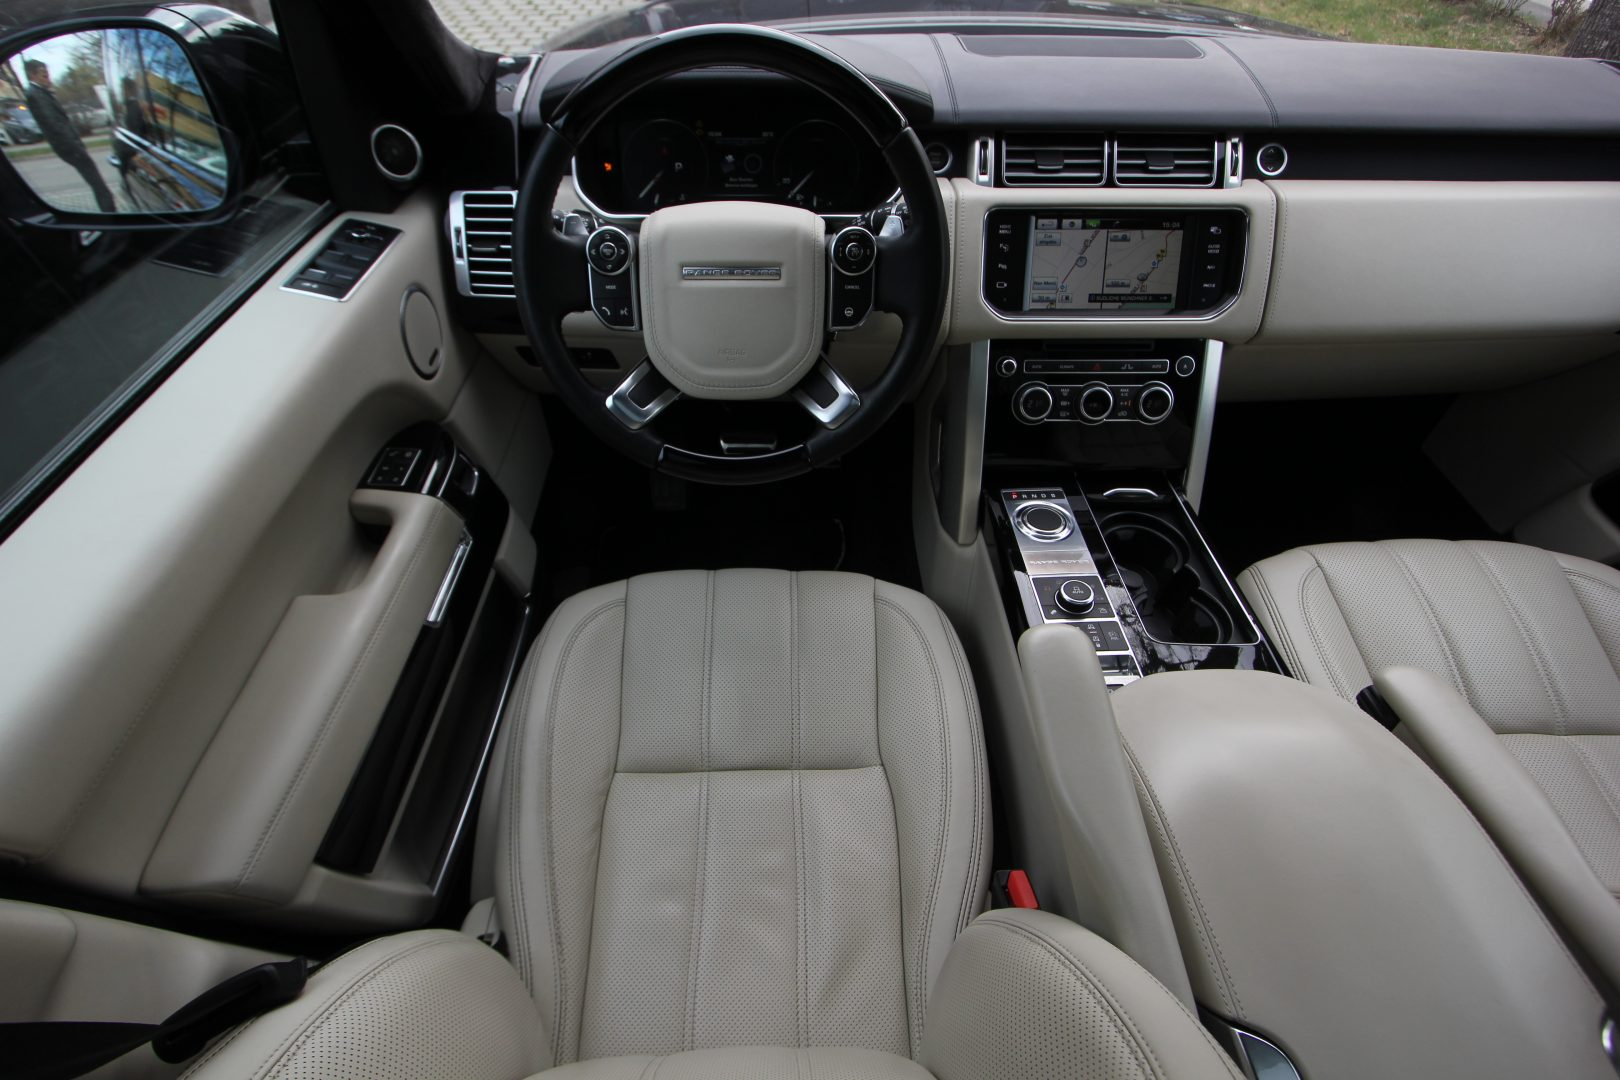 AIL Land Rover Range Rover Autobiography lang 4